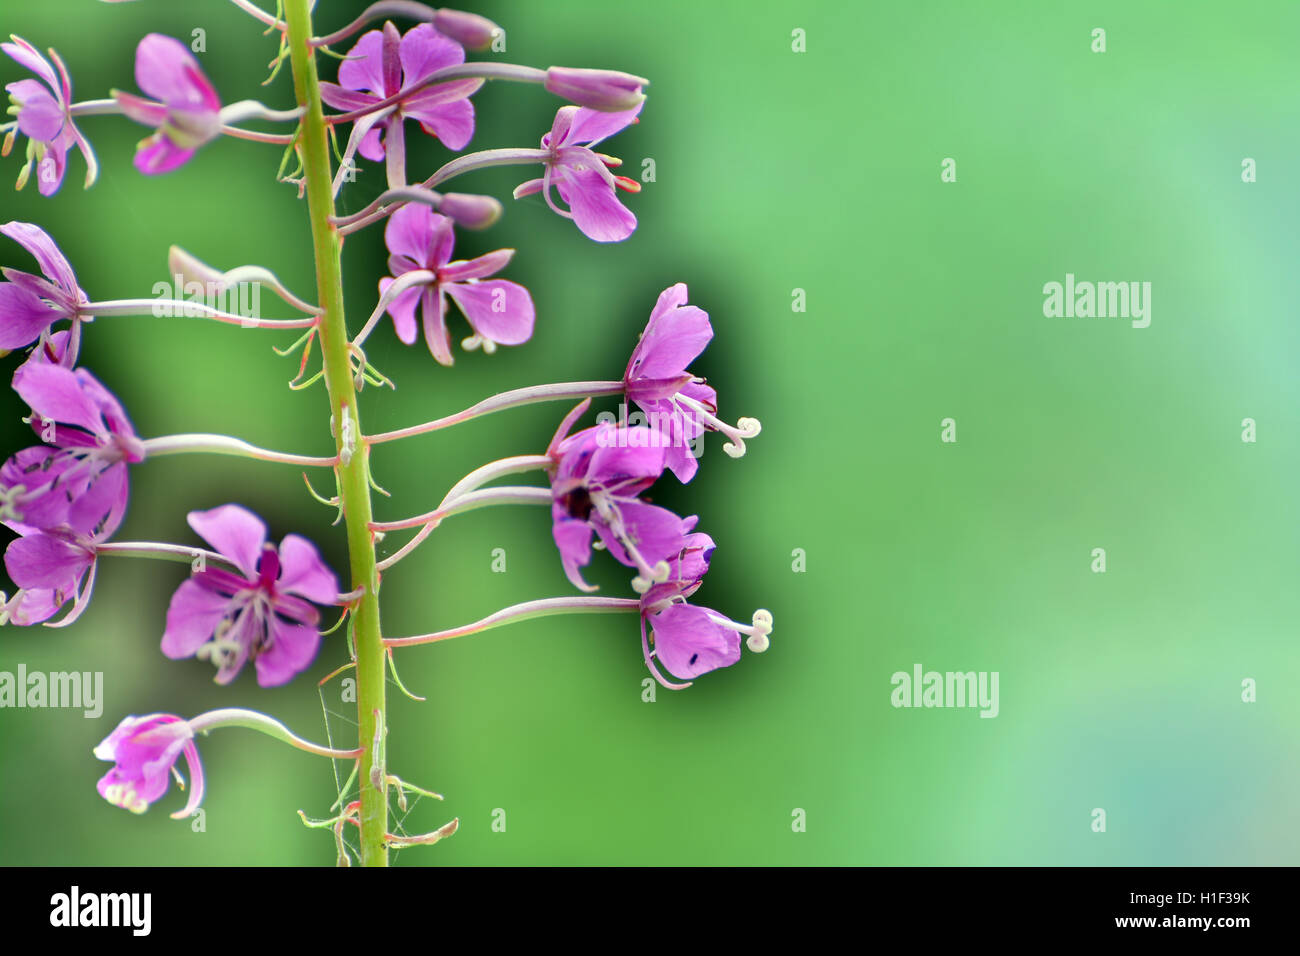 Close-Up Abstract Multiple Exposed Wild Rose Quartz Flowers_2 with Blurry Soft Background Brandywine Meadows, Whistler, - Stock Image